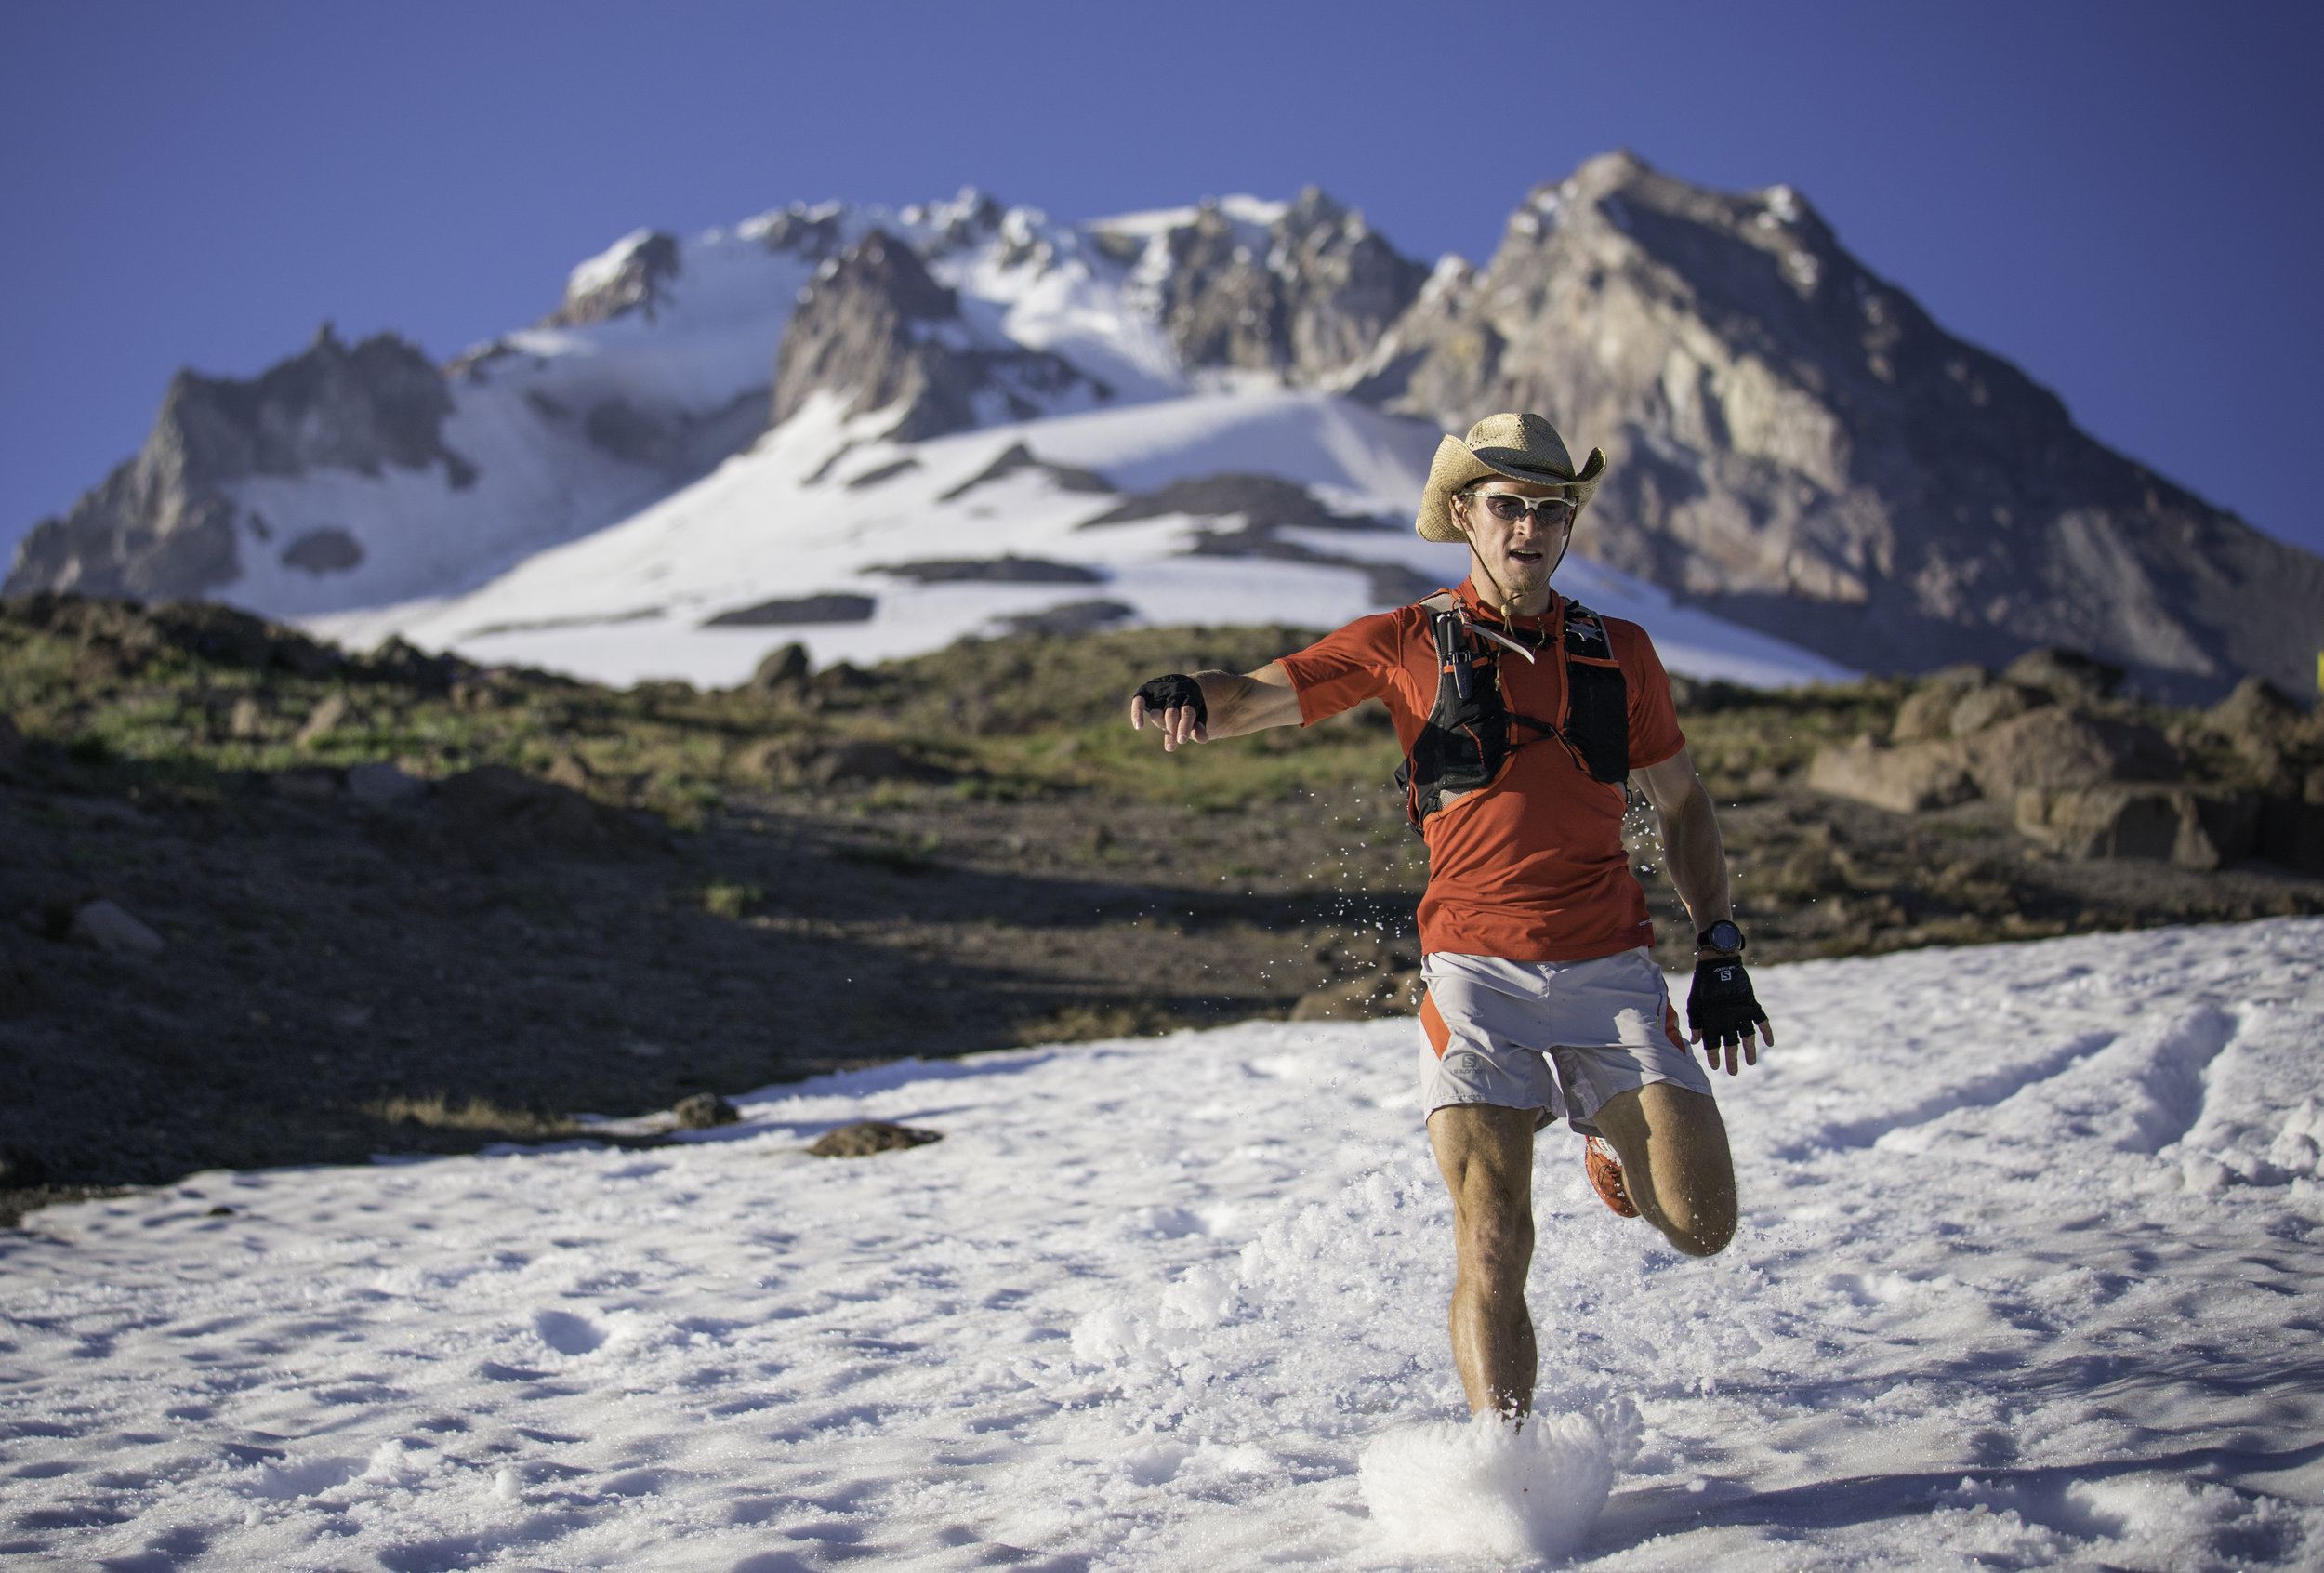 Max King, Co-director - Max has done a little bit of everything. From the roads and the track to trails and mountains he enjoys the sport of running and want to pass on what he's learned over the years. He's excited to share his experiences and knowledge in a small camp setting and instill a passion for adventure.He lives in Bend, OR with his wife and two adventurous kids. He has multiple world championship titles and has run on trails all over the world with some of his favorite trails right here in Oregon.